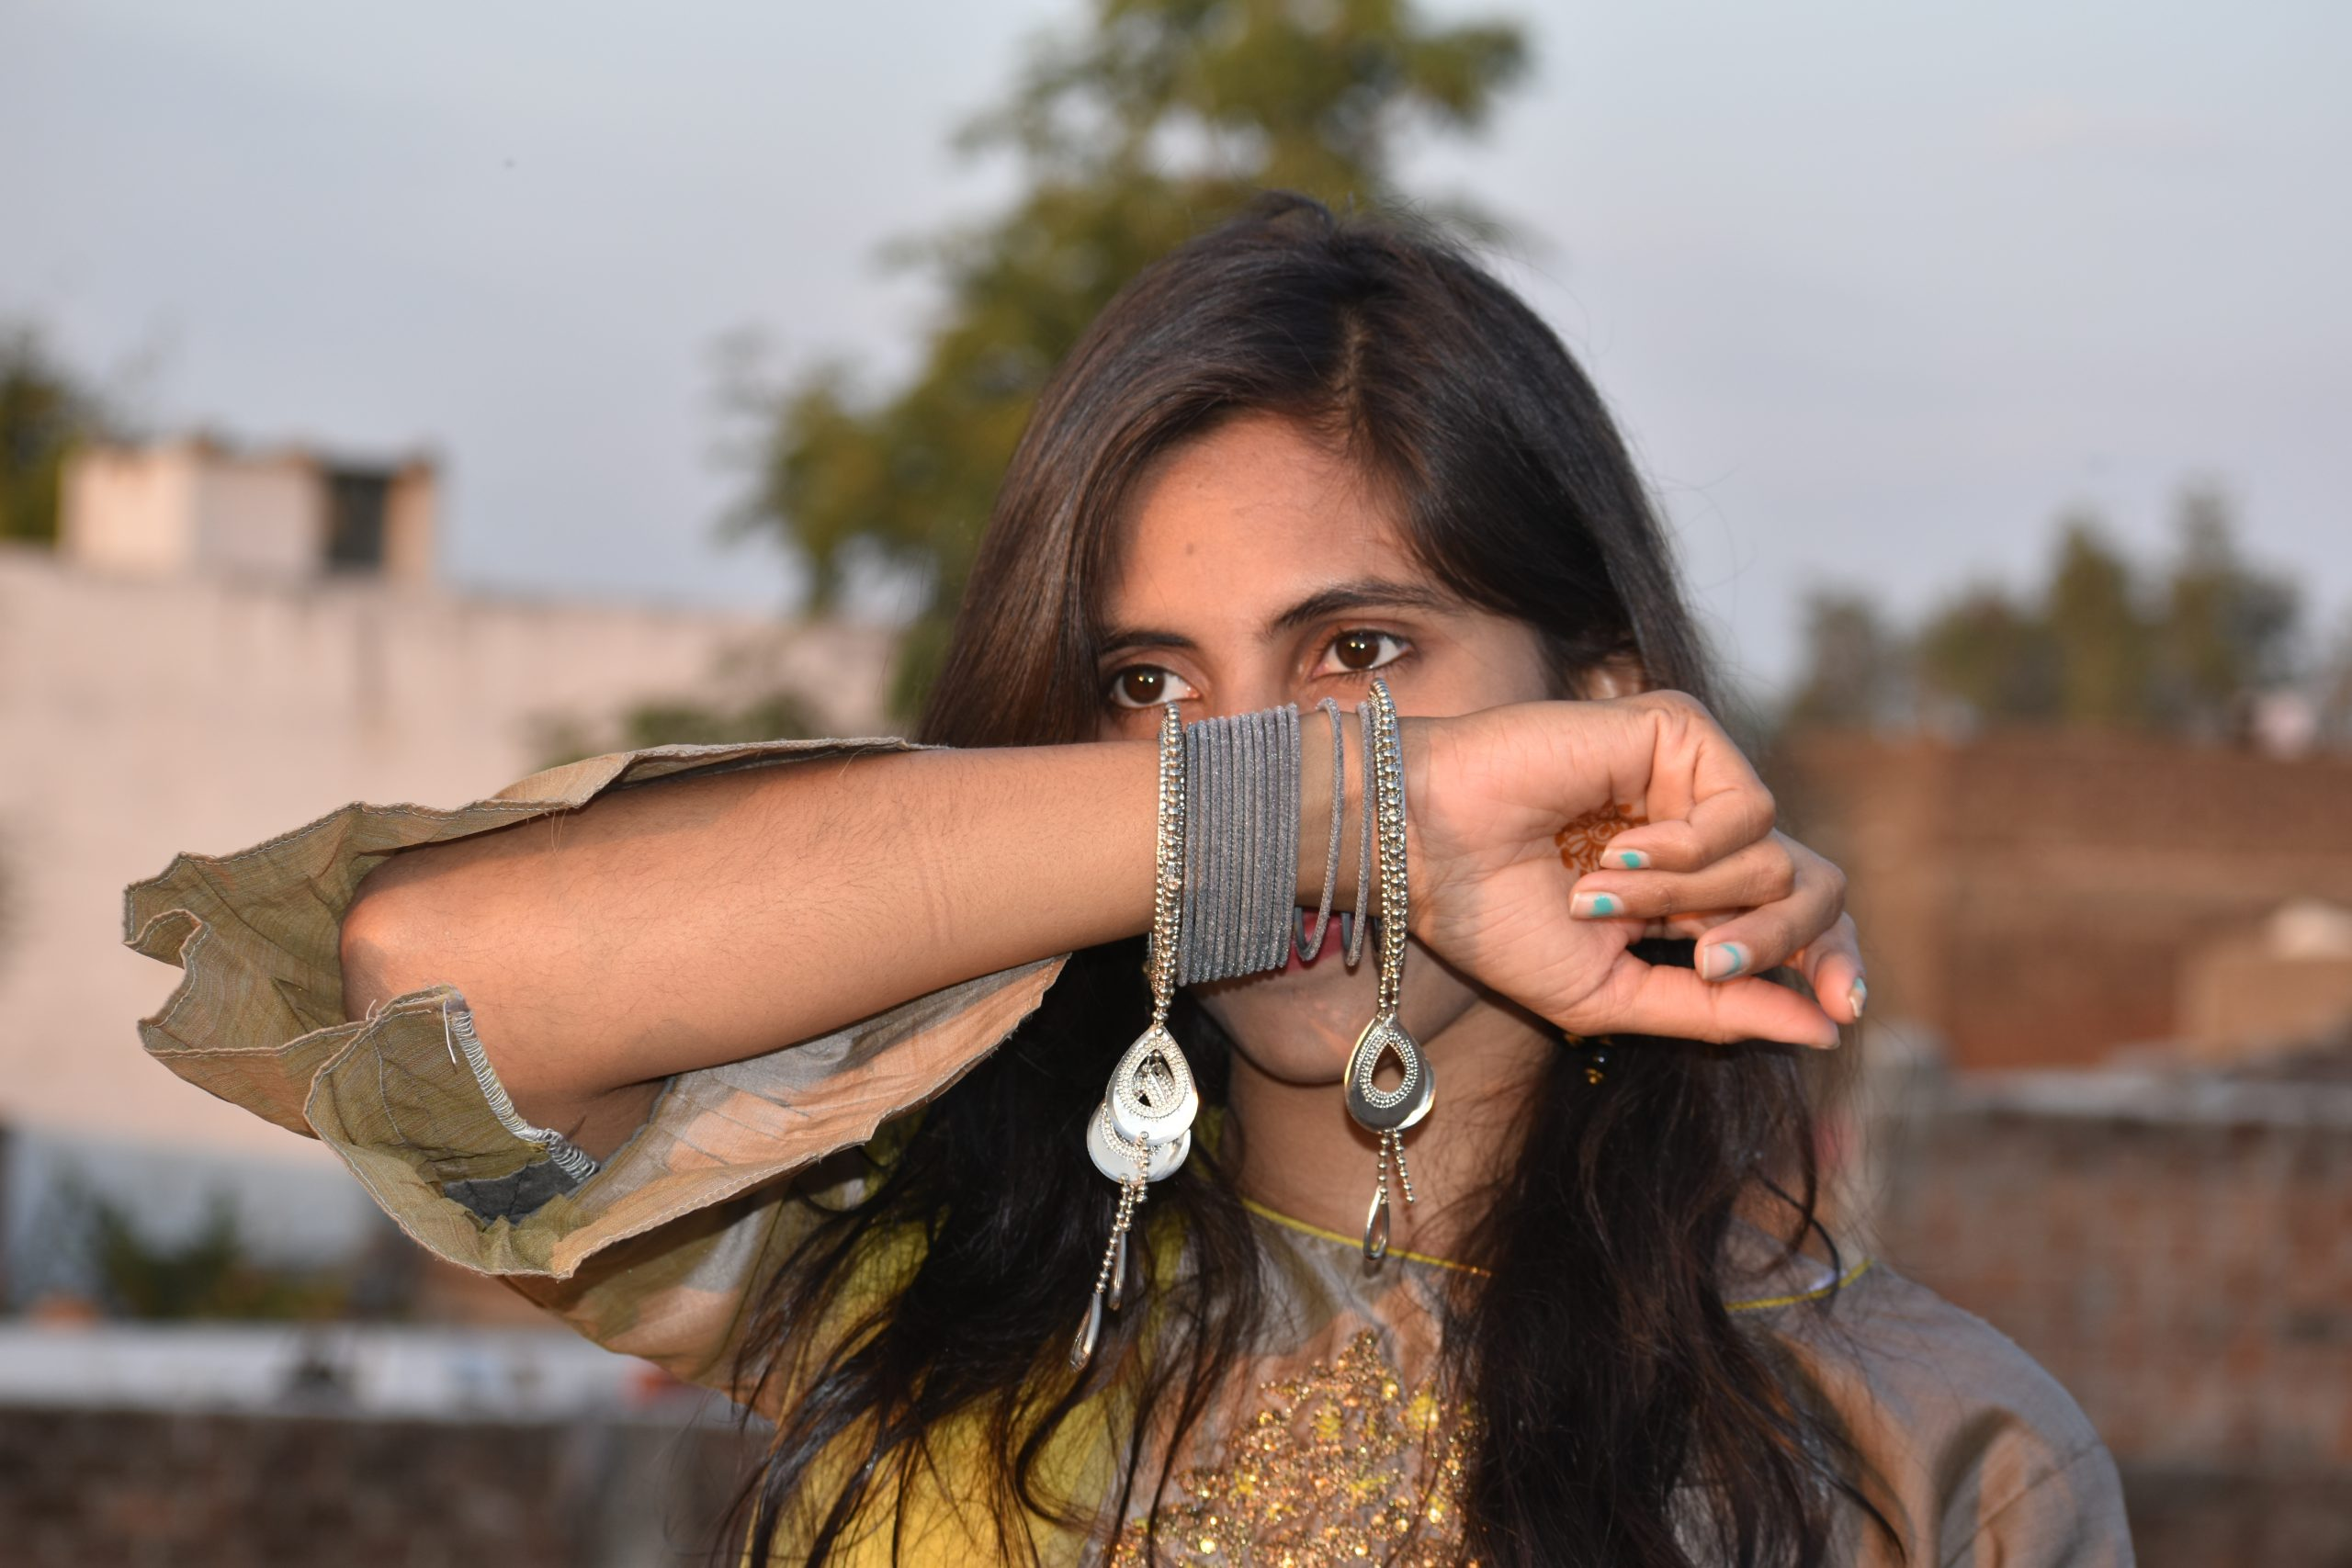 Girl showing bangles